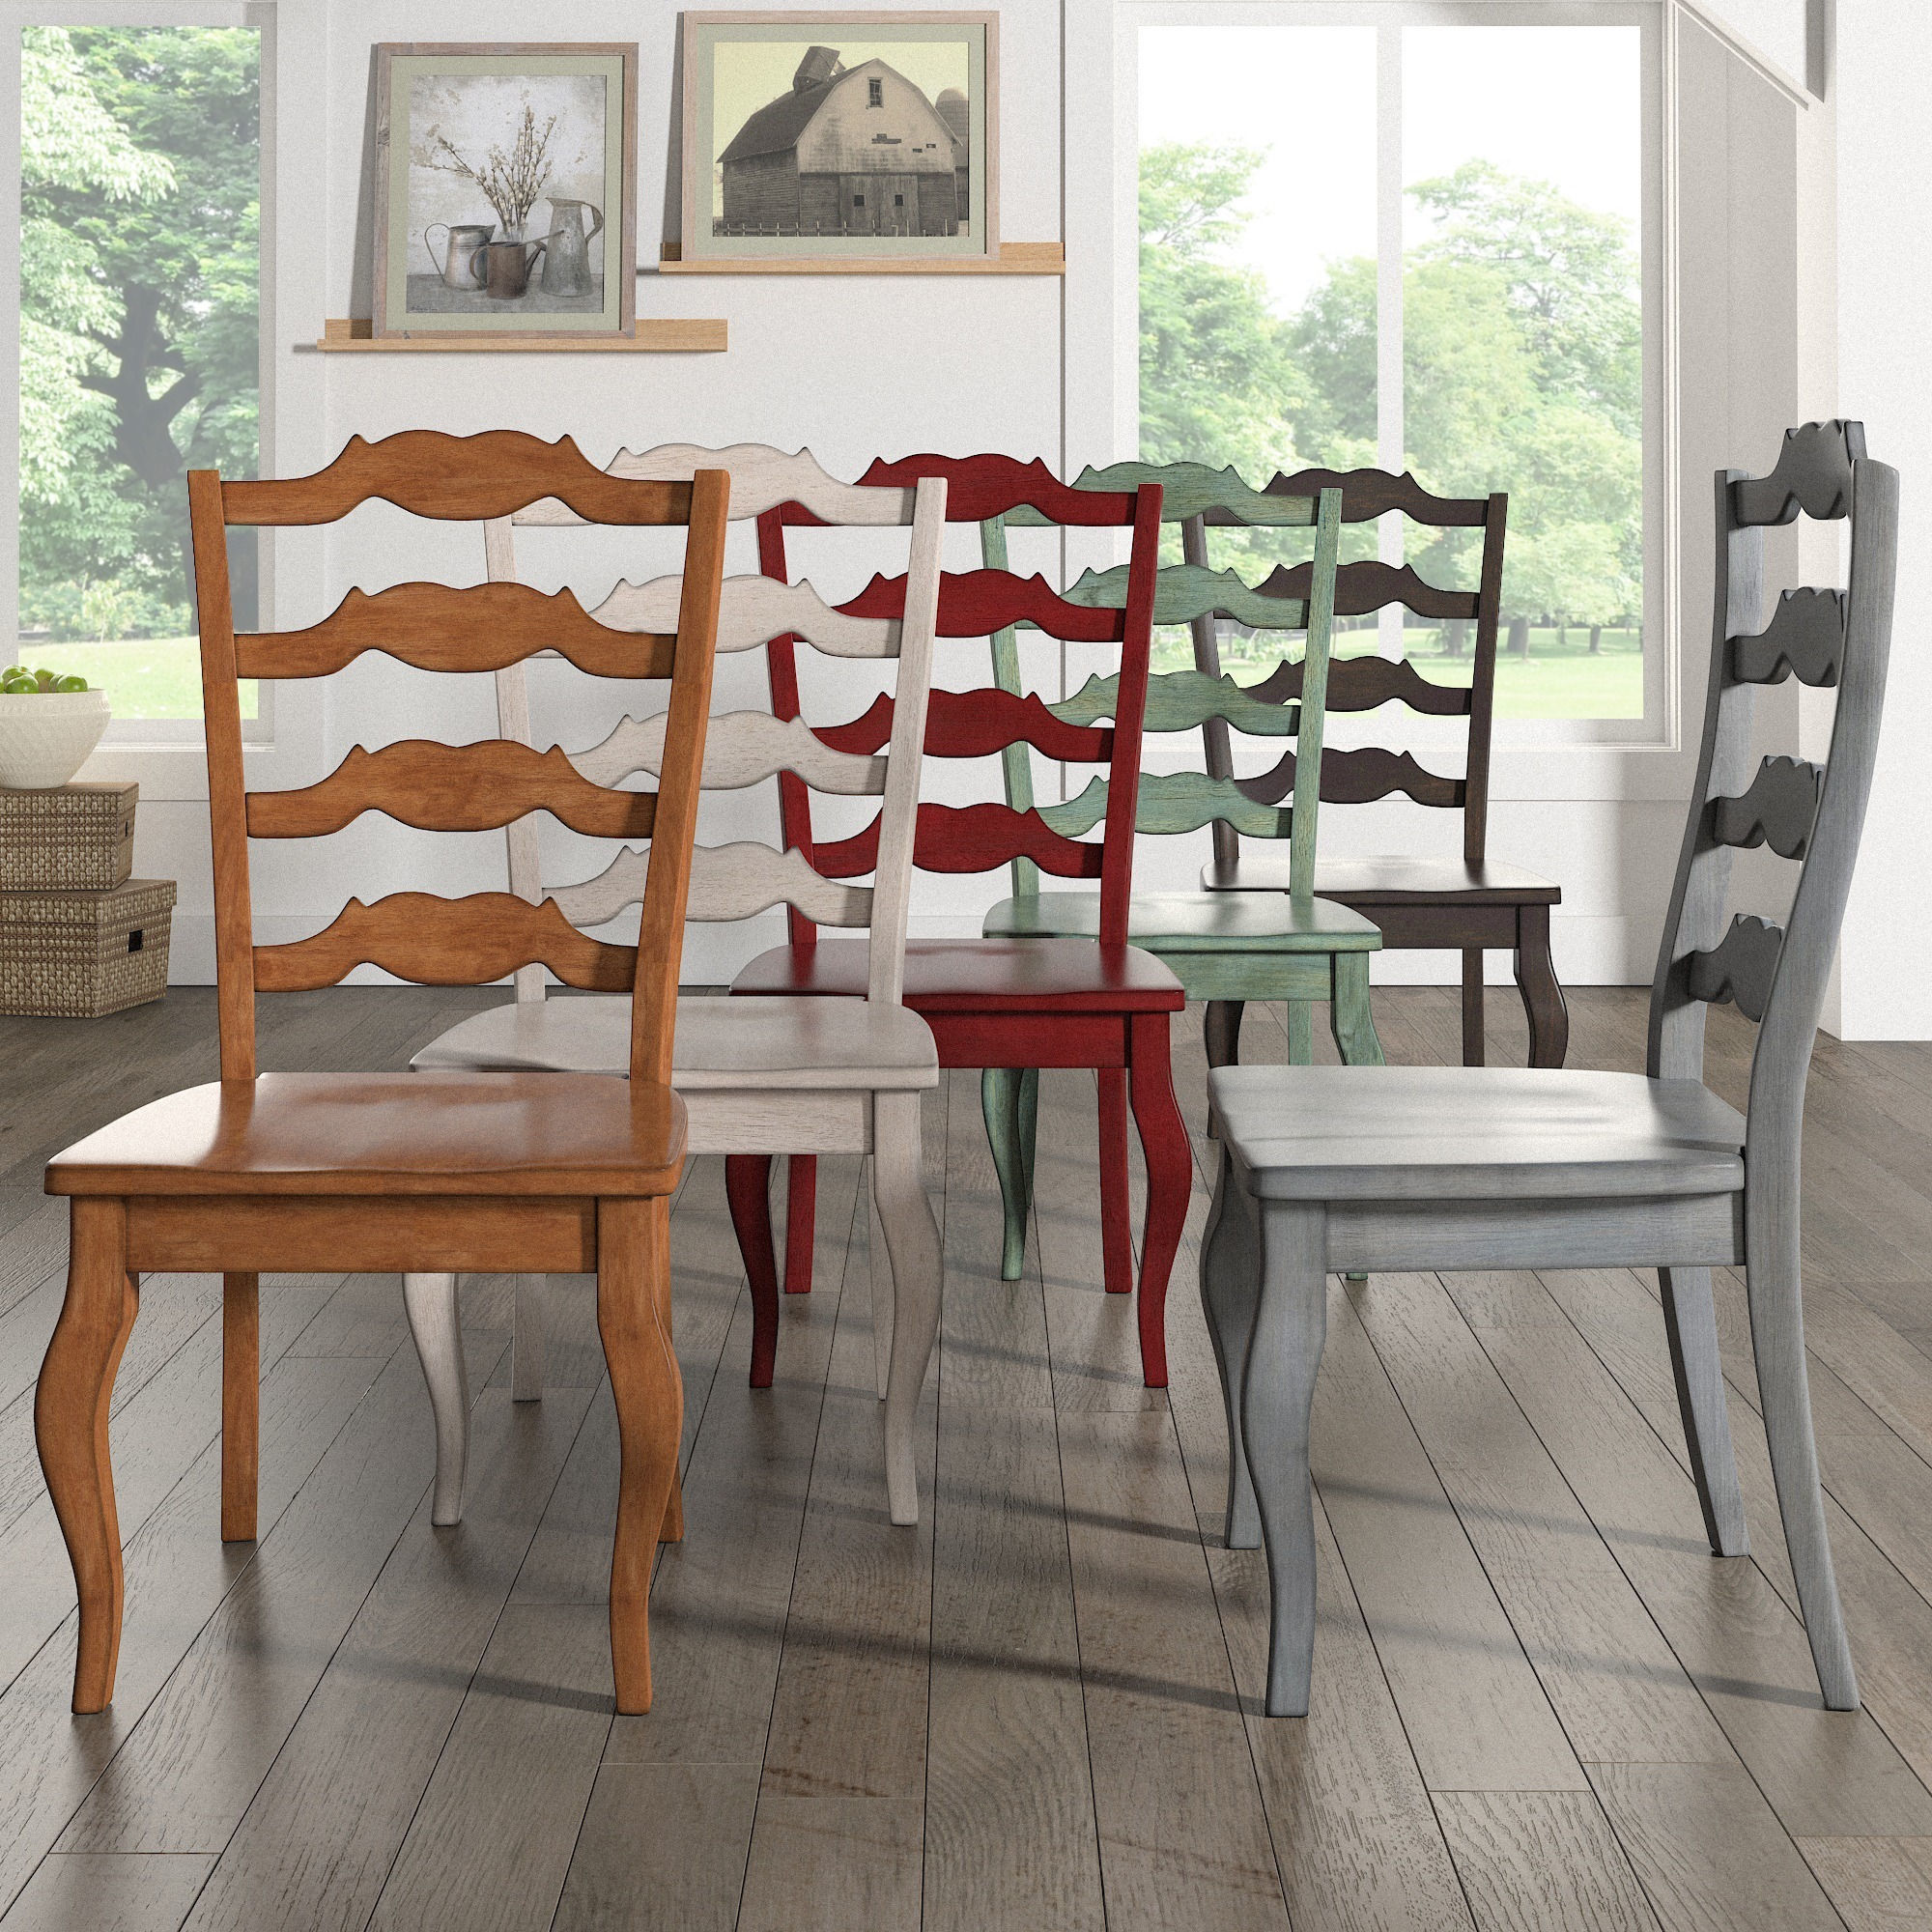 Brilliant Eleanor French Ladder Back Wood Dining Chair Set Of 2 By Inspire Q Classic Beutiful Home Inspiration Cosmmahrainfo